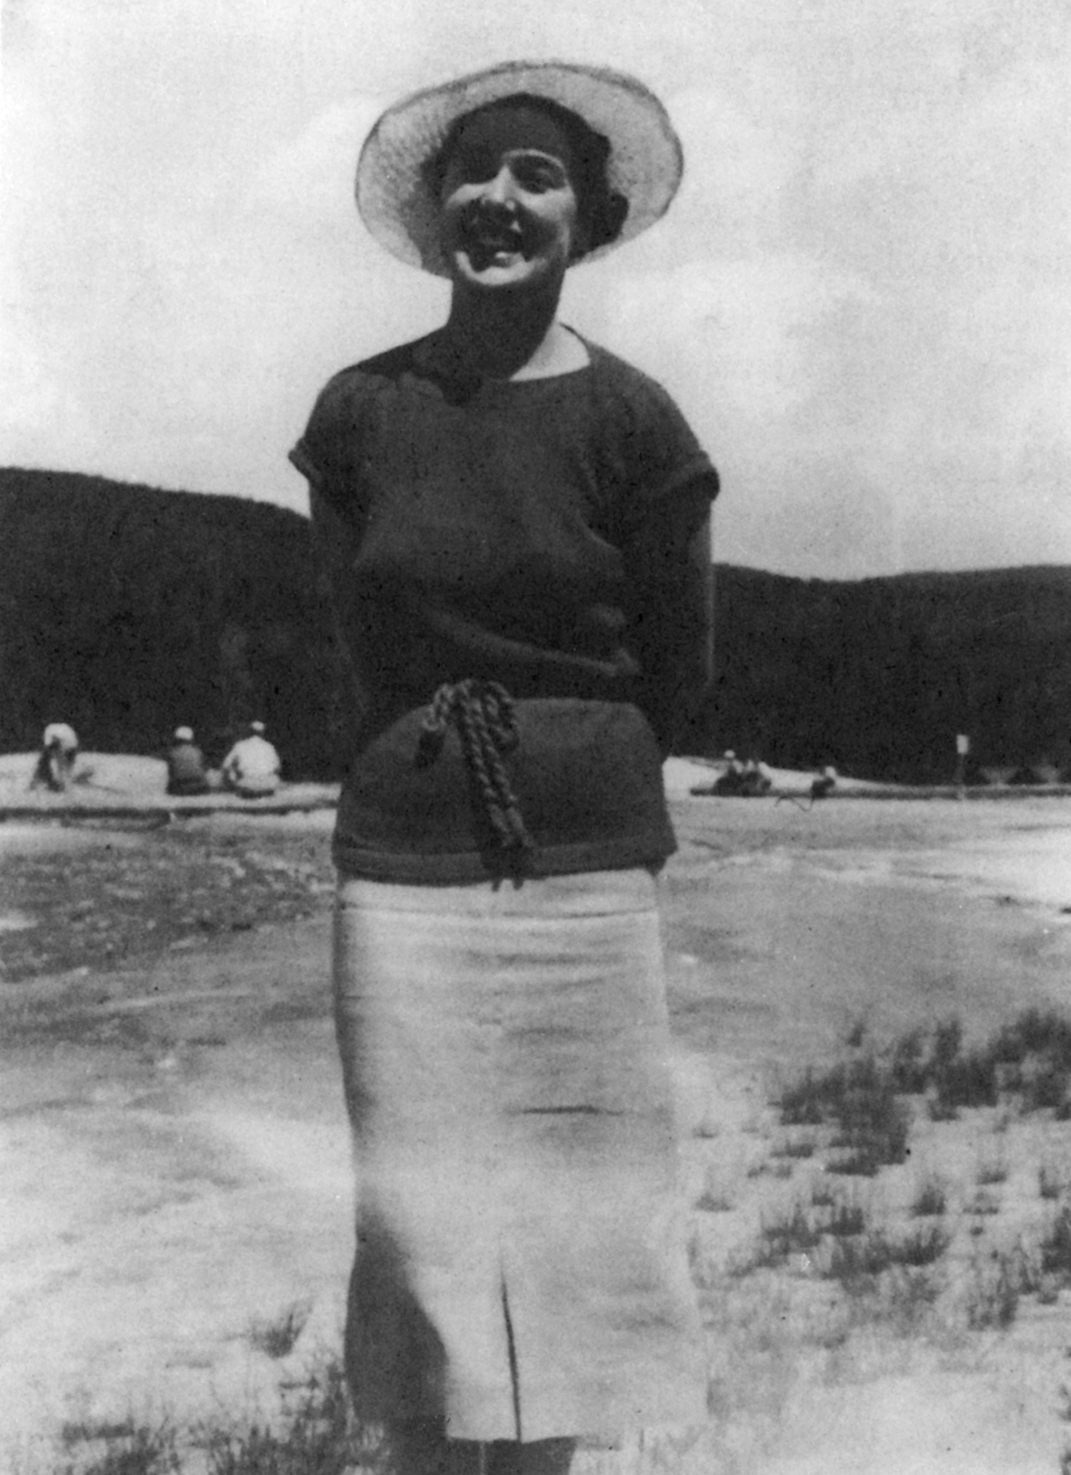 Dorothy Neal at Yellowstone Park